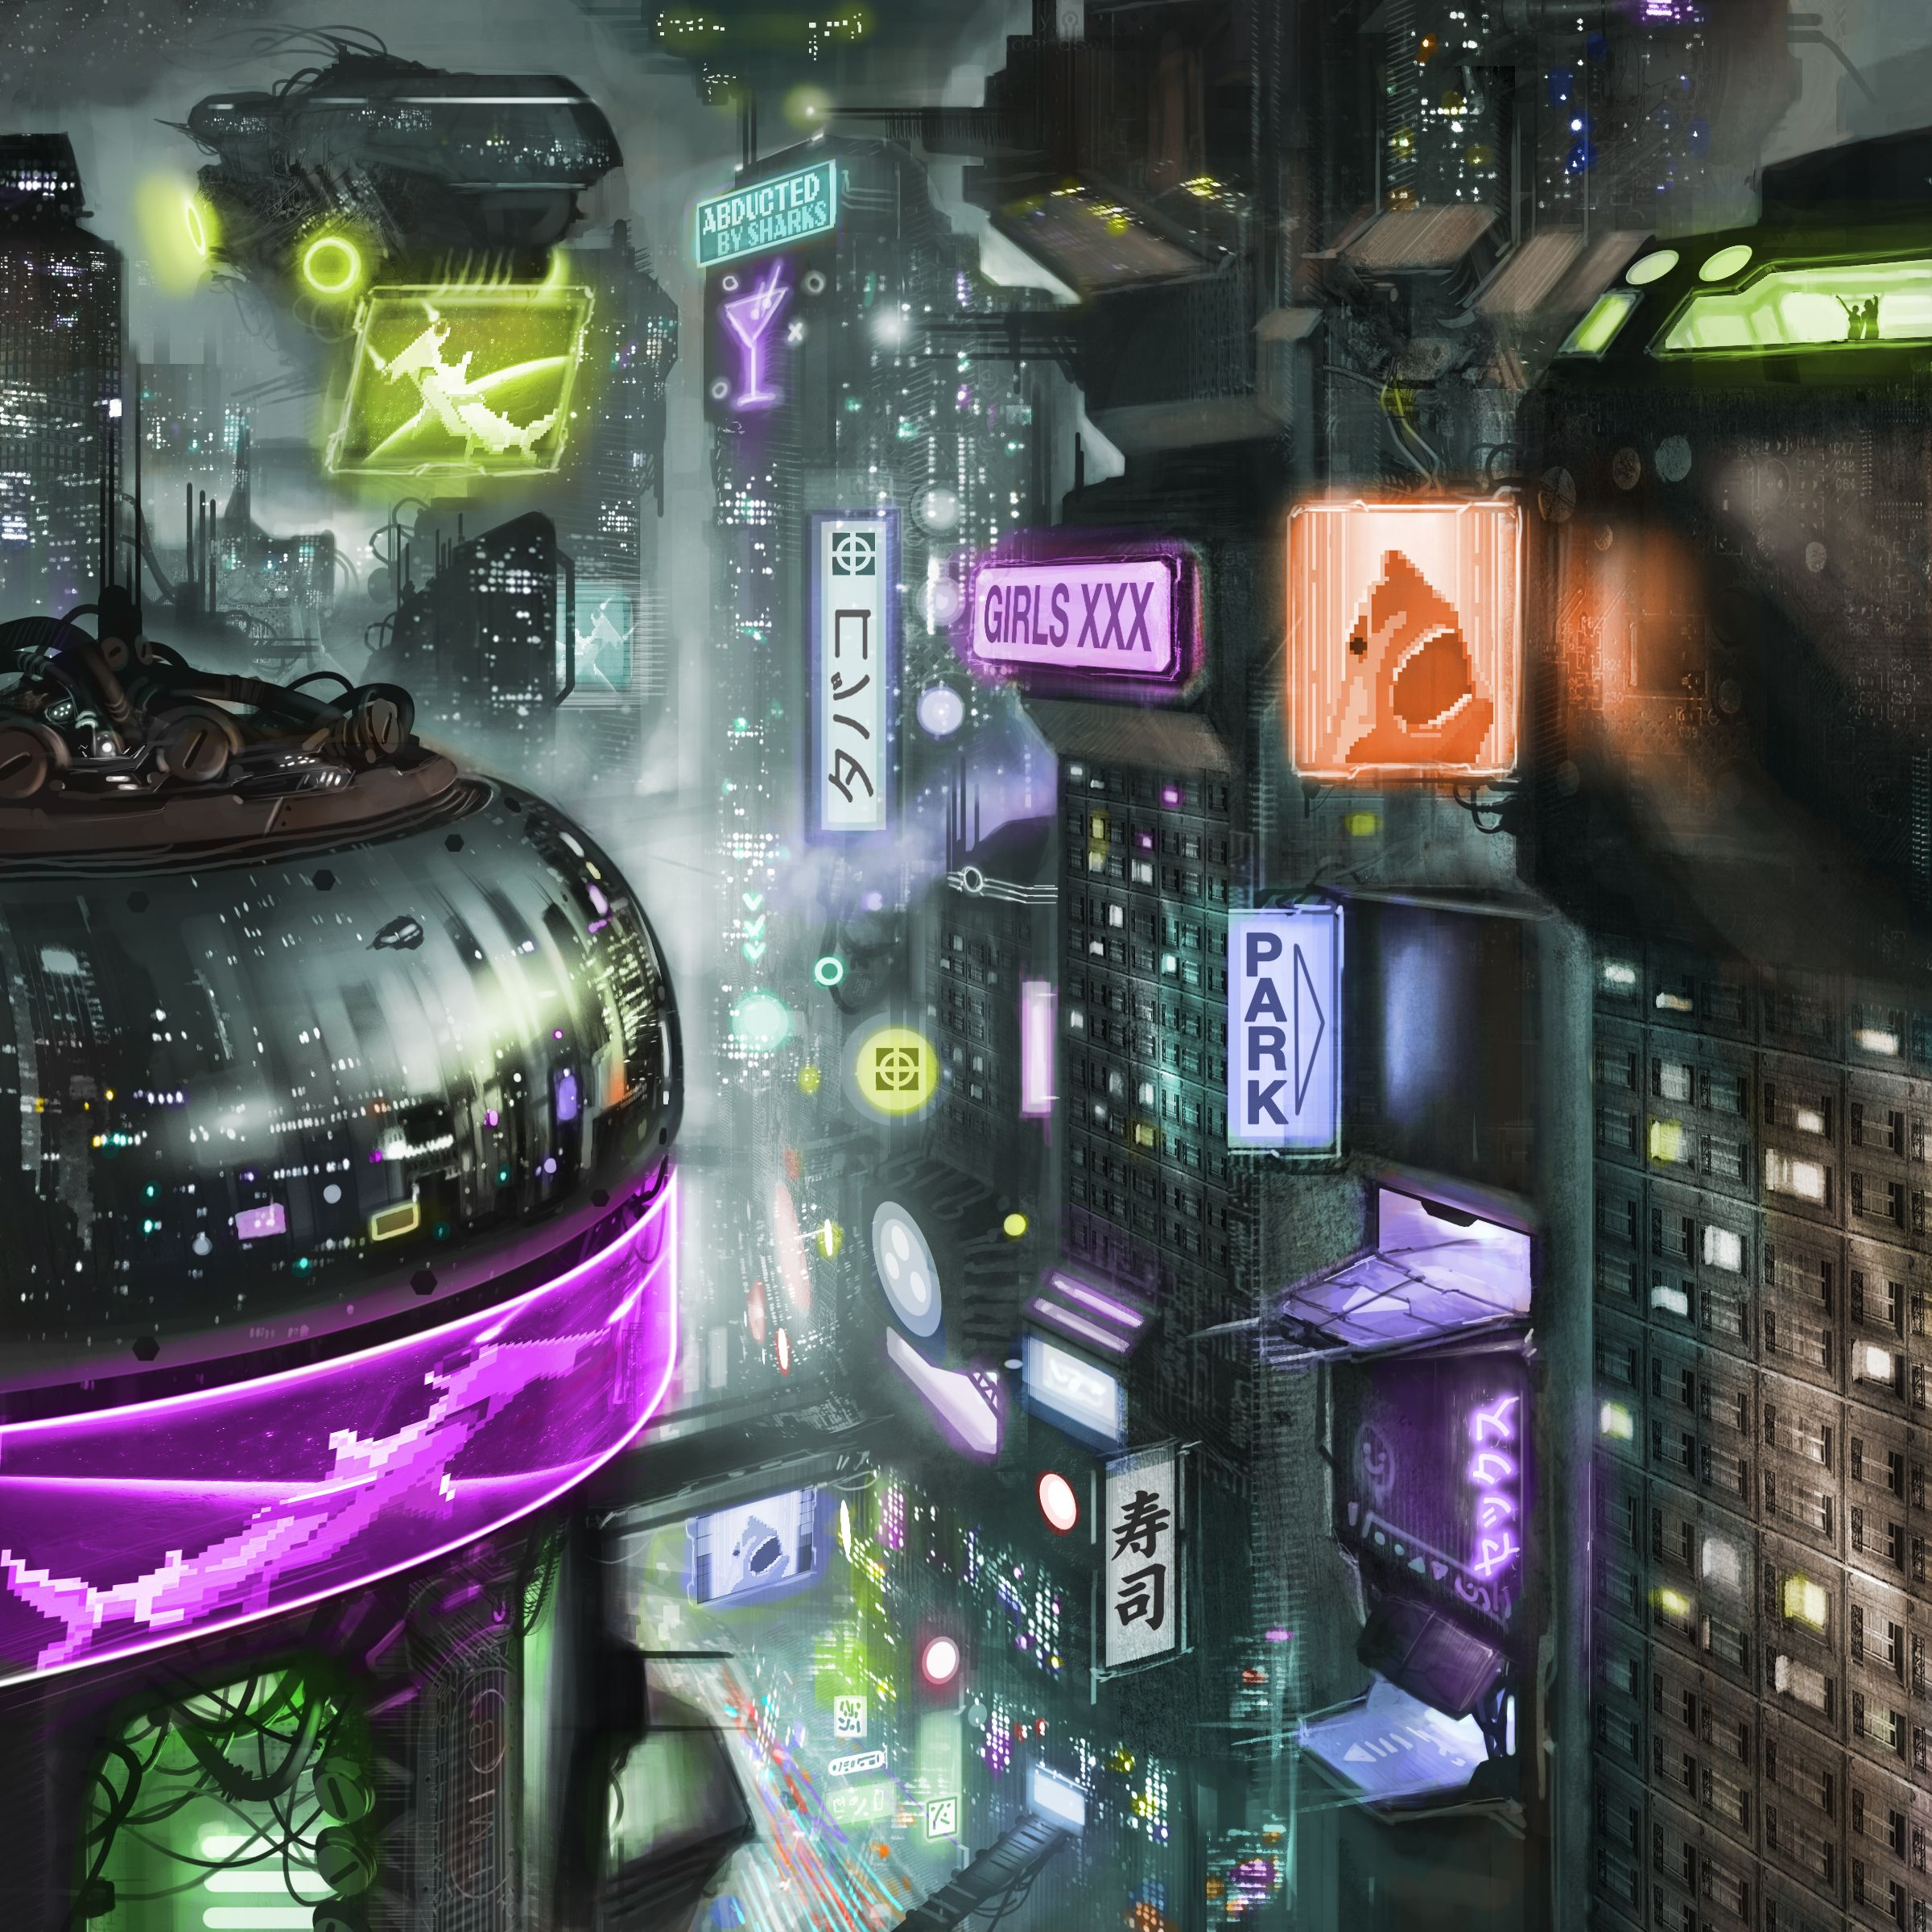 This image by Igor Sobolevsky does well to capture the grittiness of a dystopian future city here.